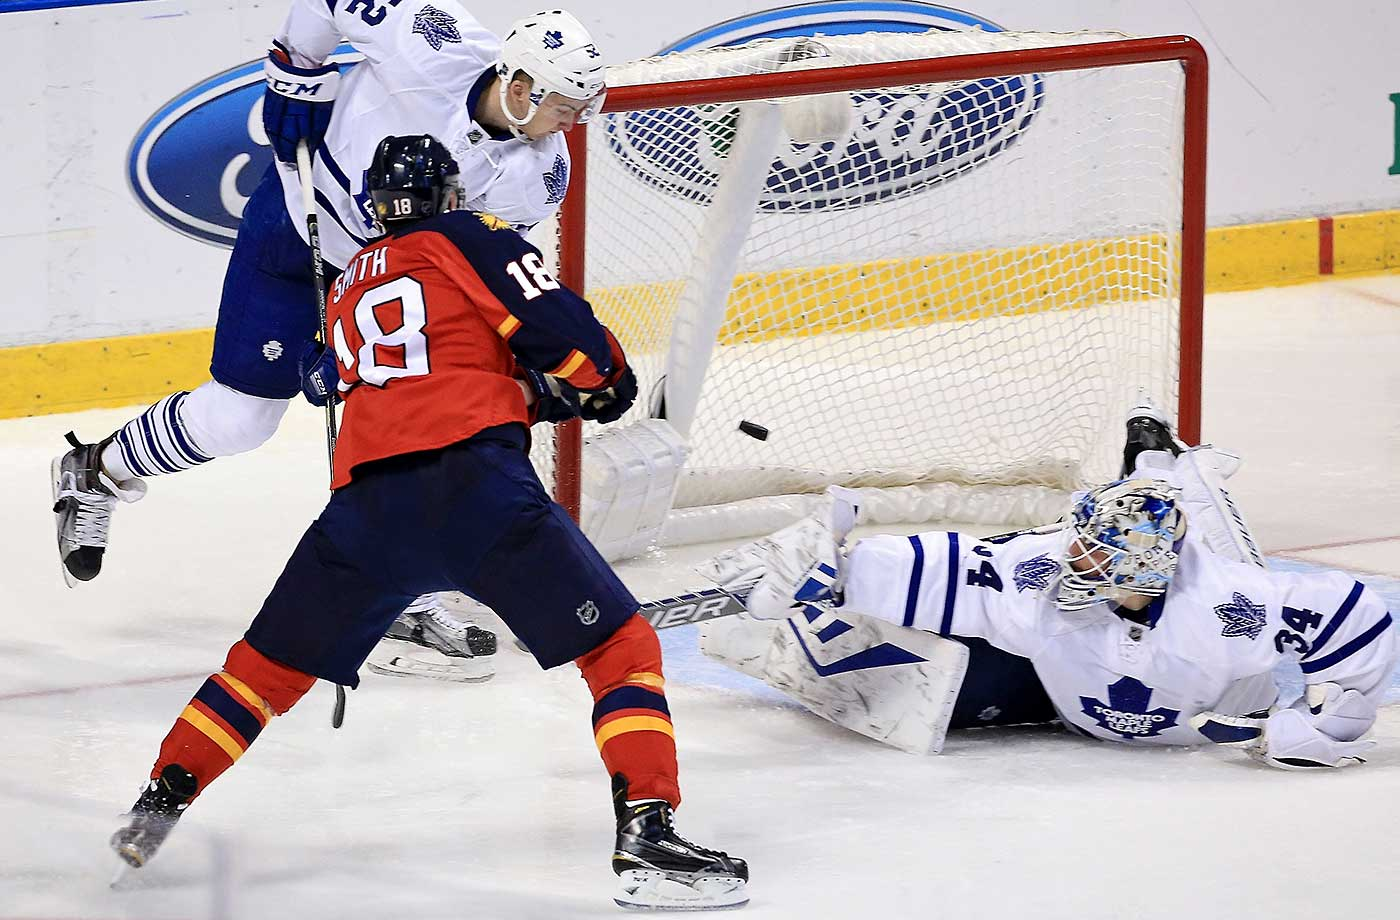 Reilly Smith of the Florida Panthers scores a goal on James Reimer of the Toronto Maple Leafs during a game at BB&T Center in Sunrise, Fla.